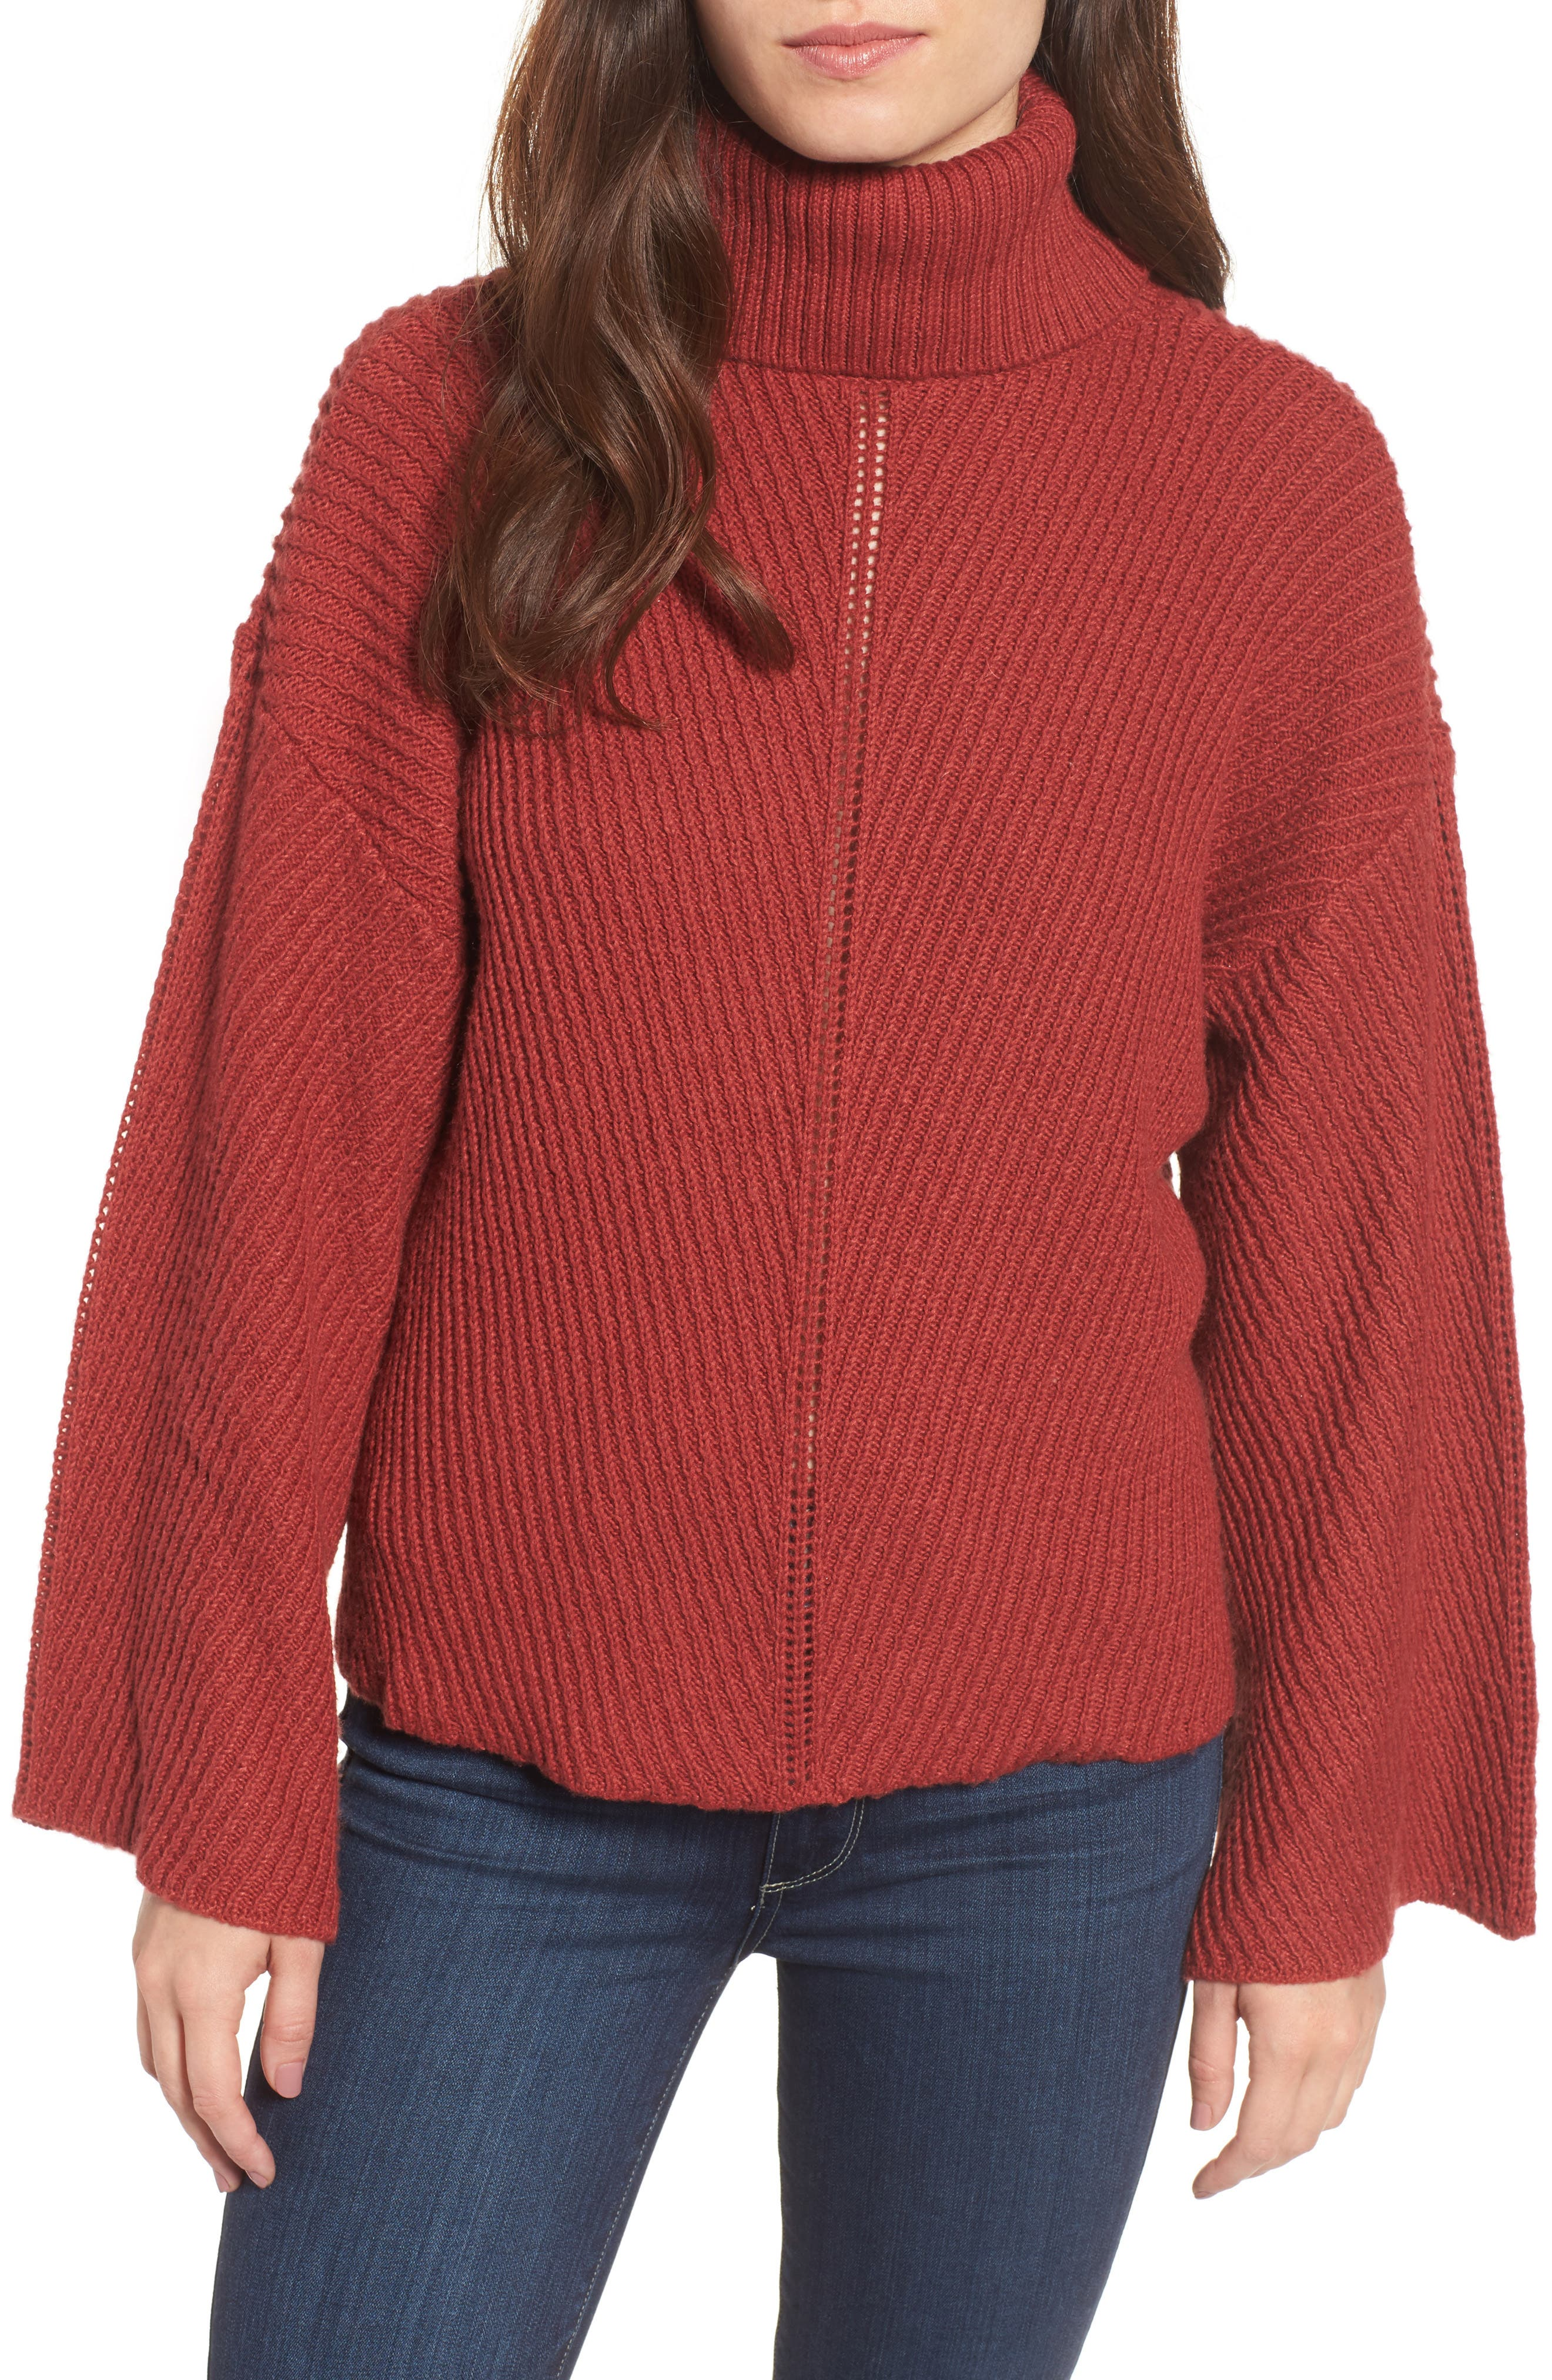 Main Image - cupcakes and cashmere Randy Turtleneck Sweater